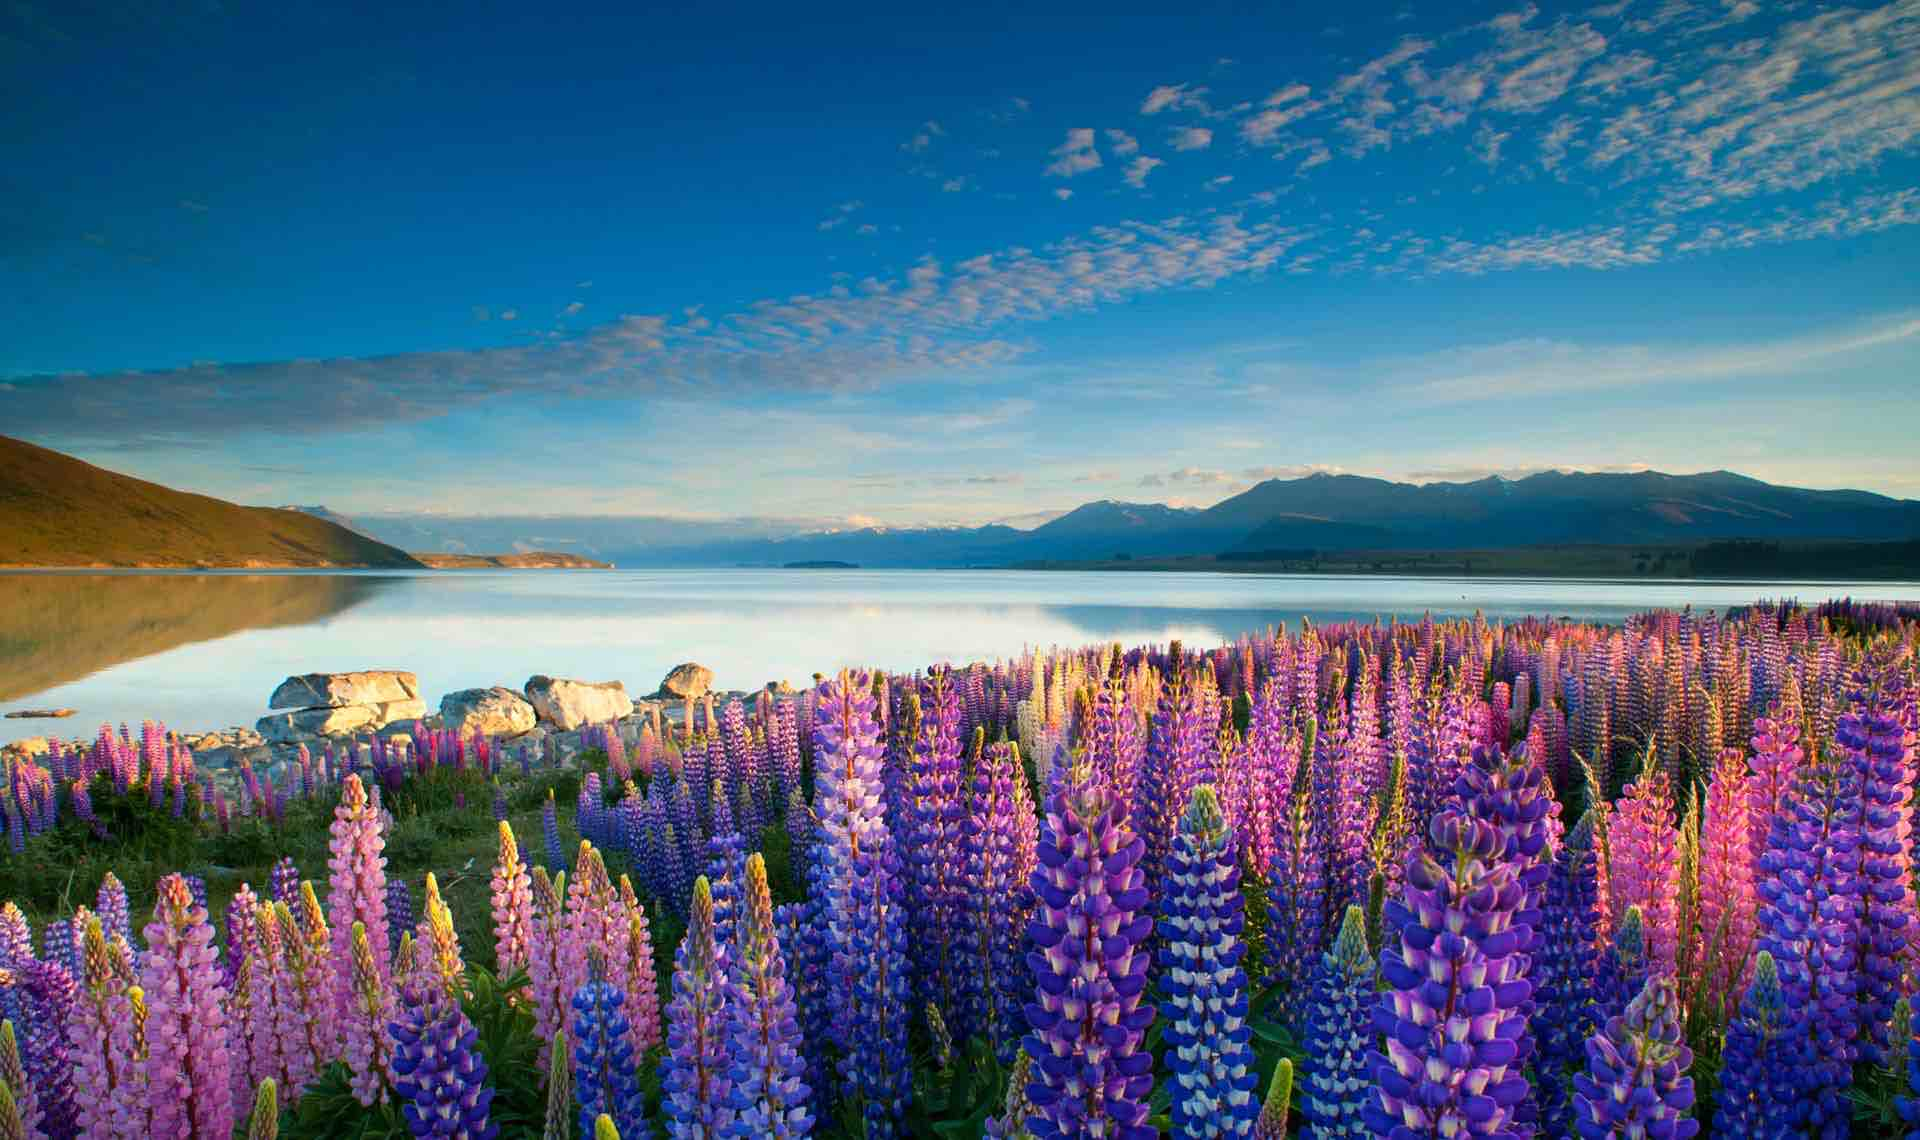 Pink and purple Russell Lupine flowers at Lake Tekapo.